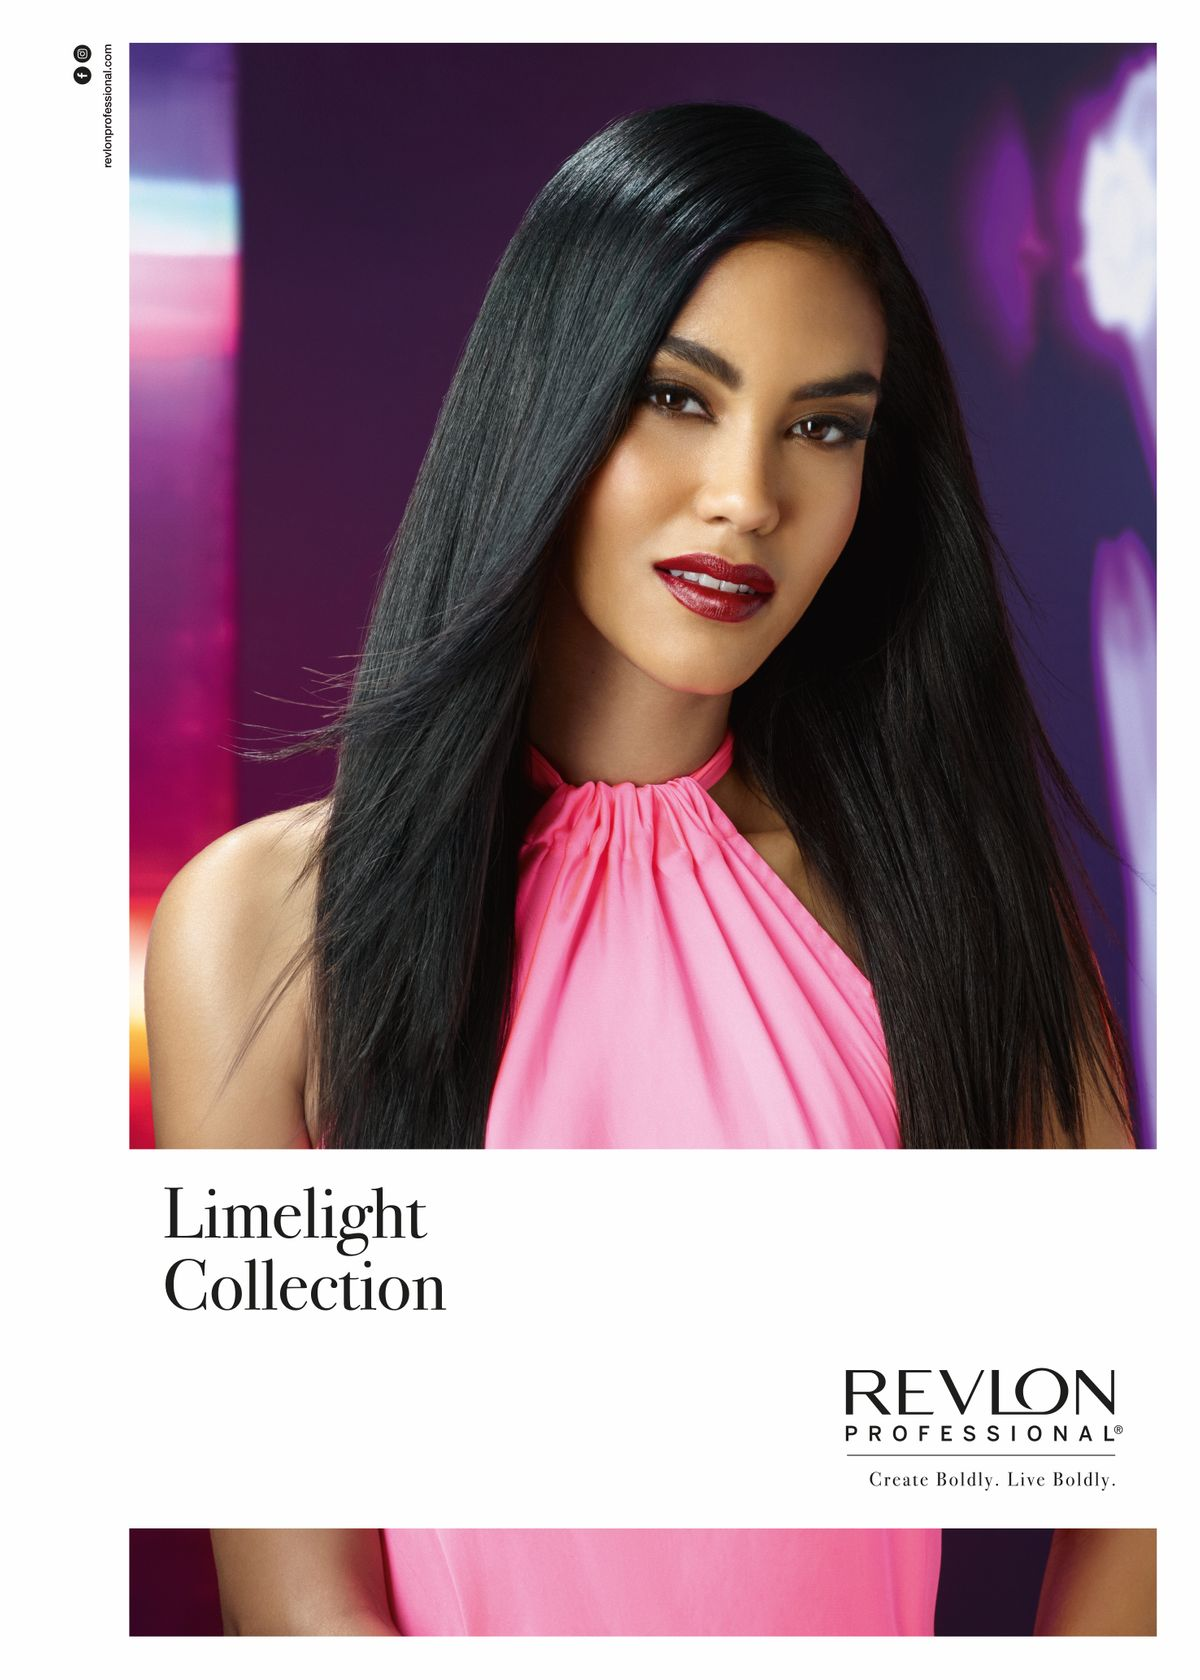 Archiv_Modelle_limelight_Poster-Limelight-China-1